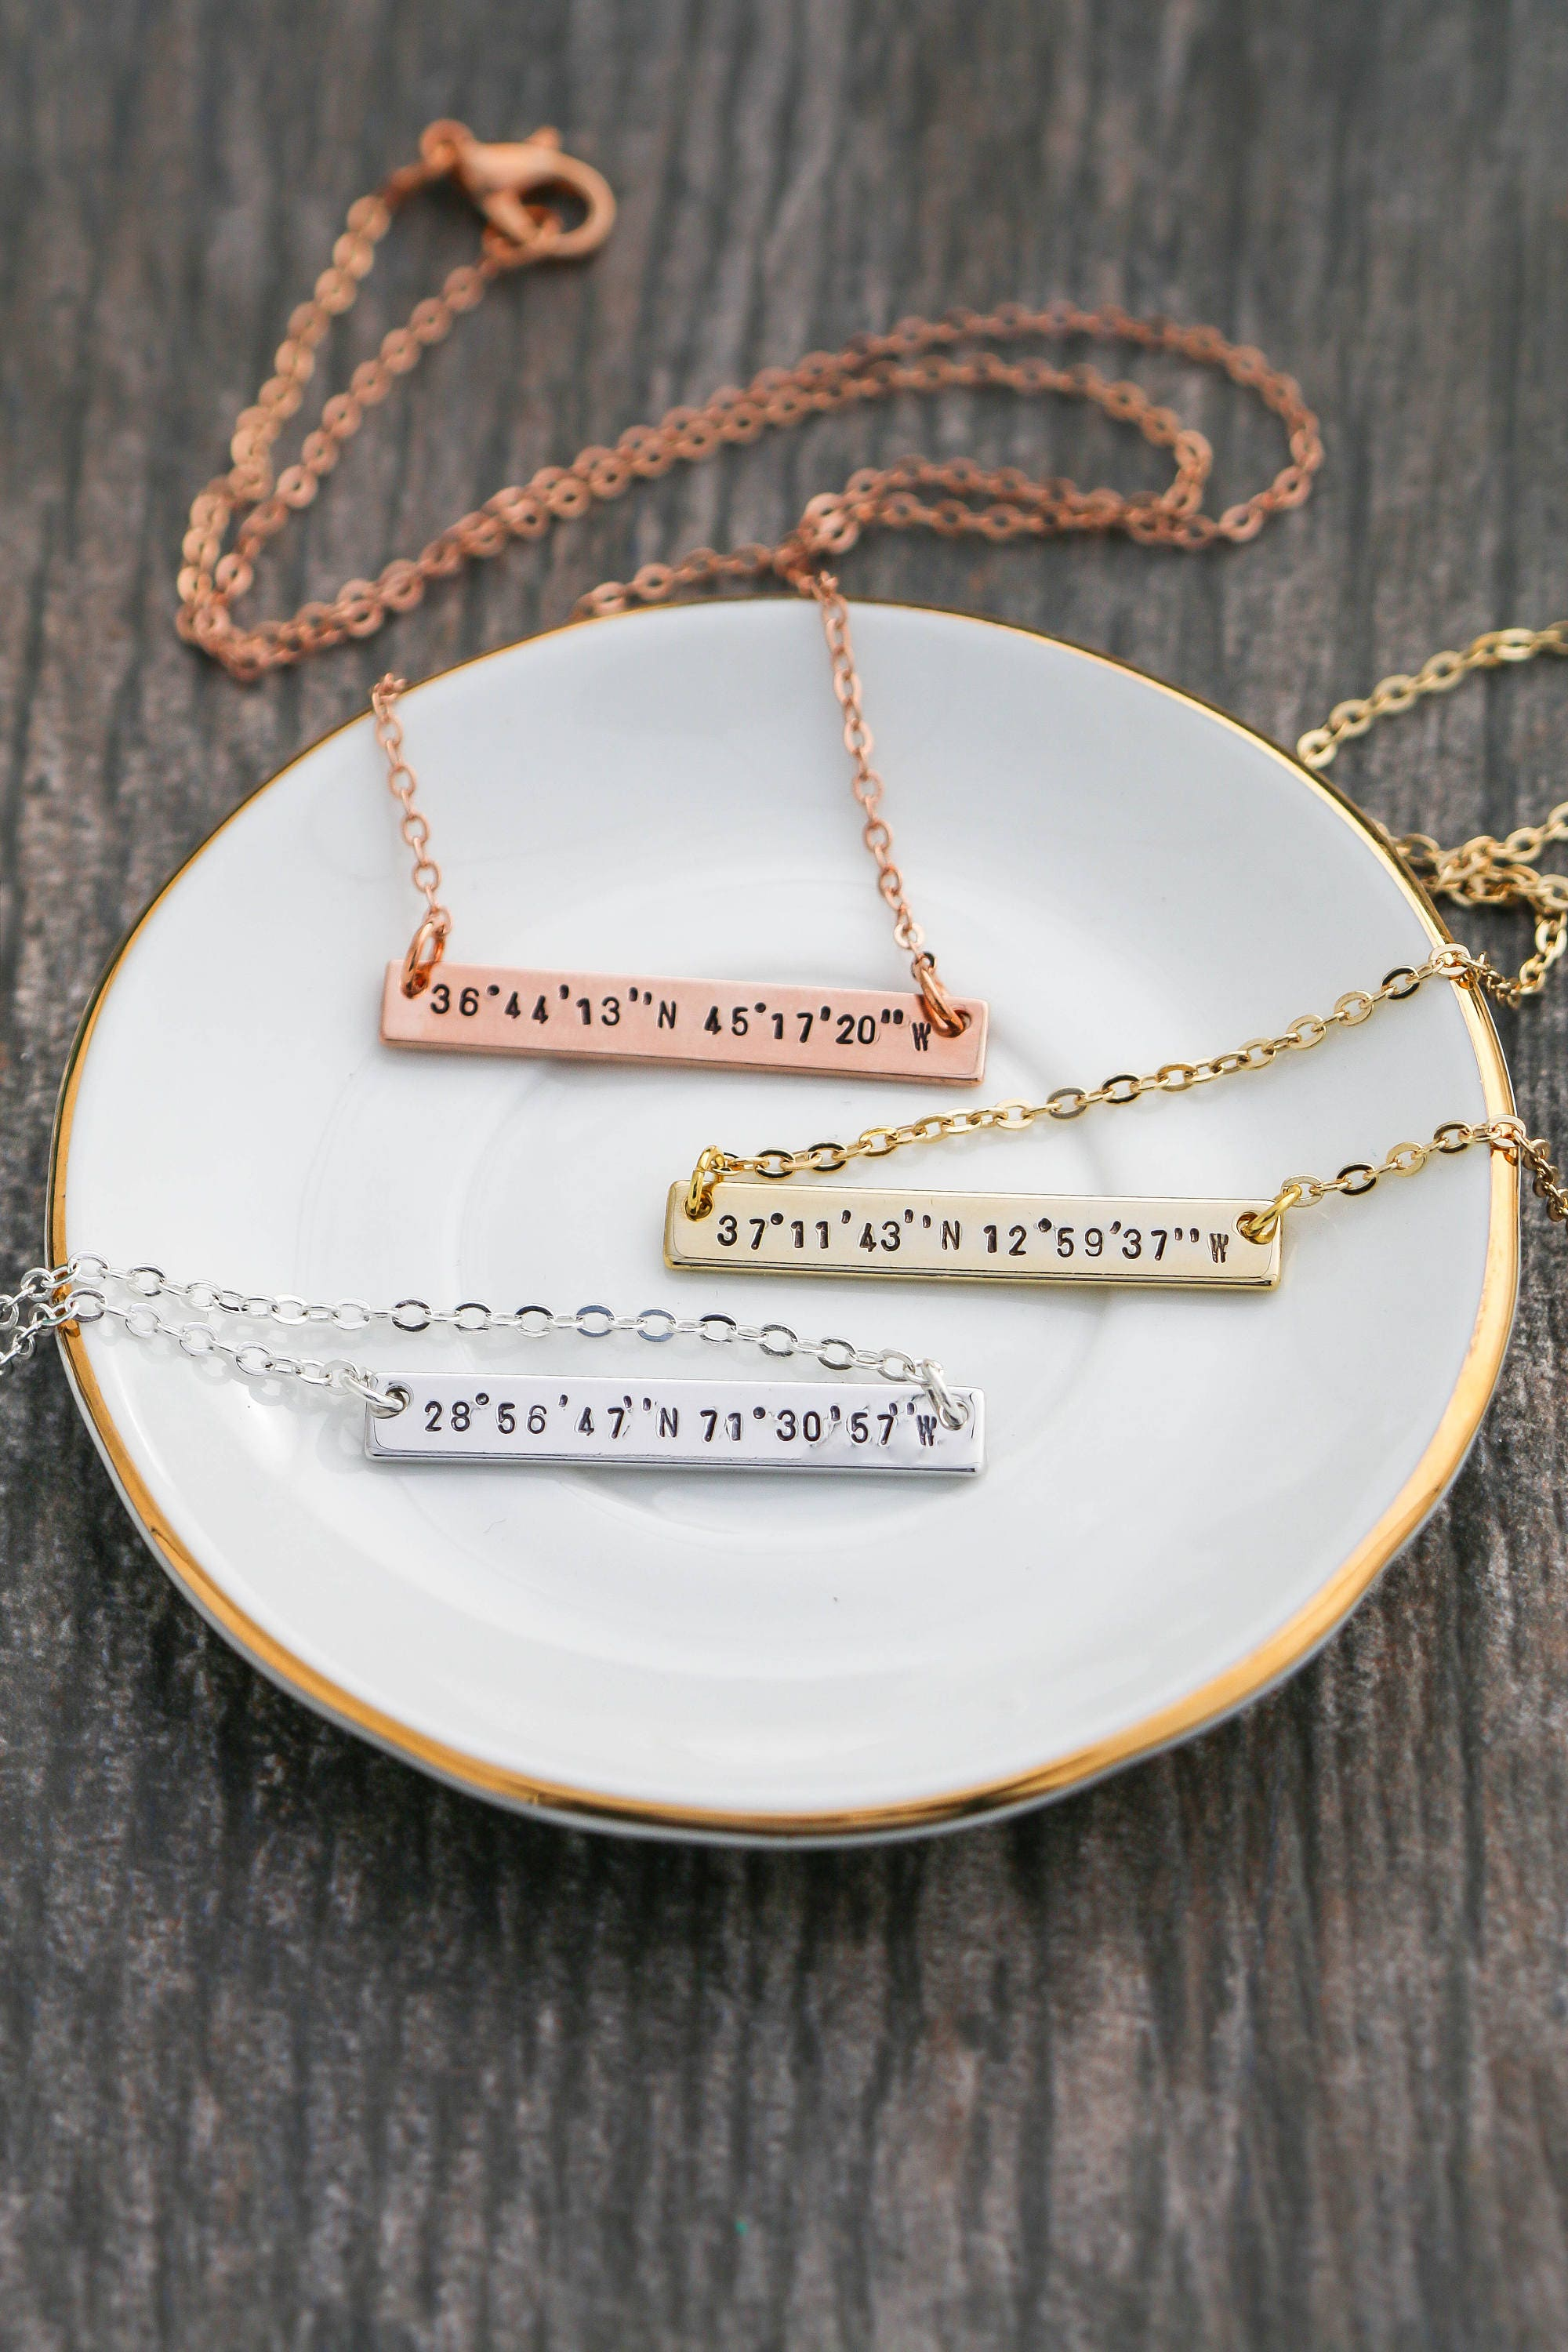 il graduation bridesmaid gift listing necklace personalized jewelry fullxfull birthday vacation gps coordinate nameplate